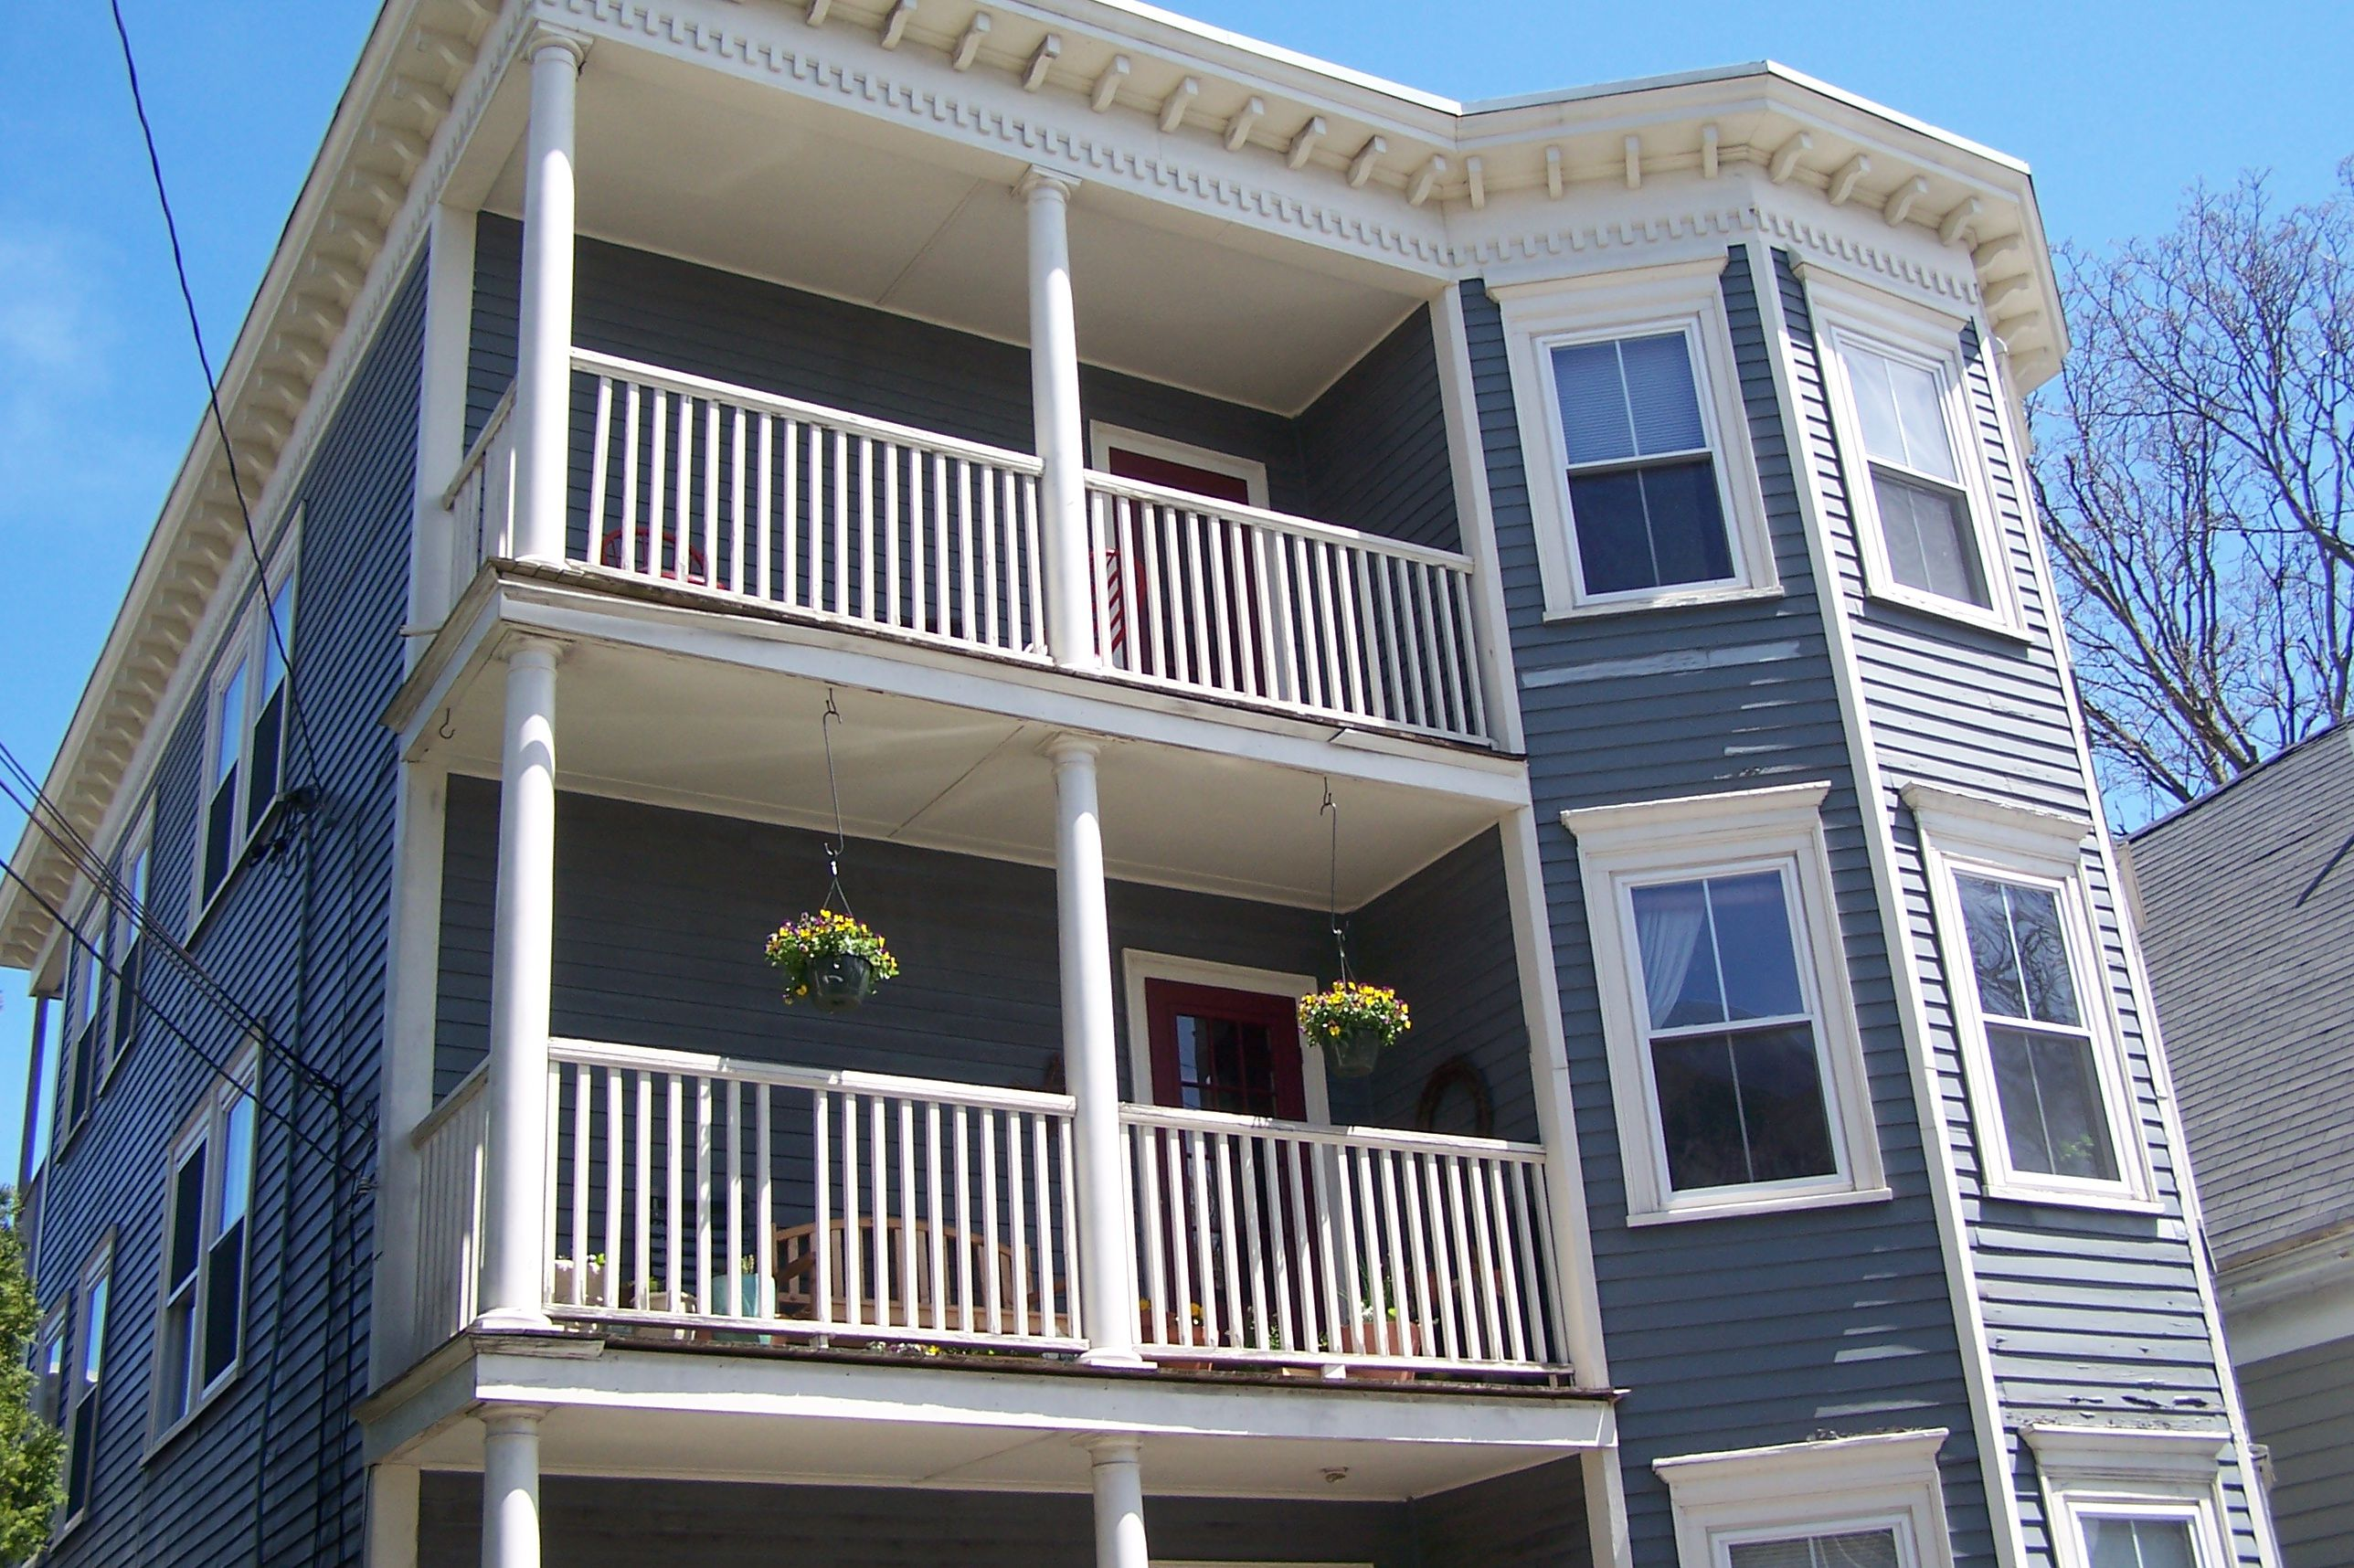 three-story wood apartment house with front porches and bay windows at each floor